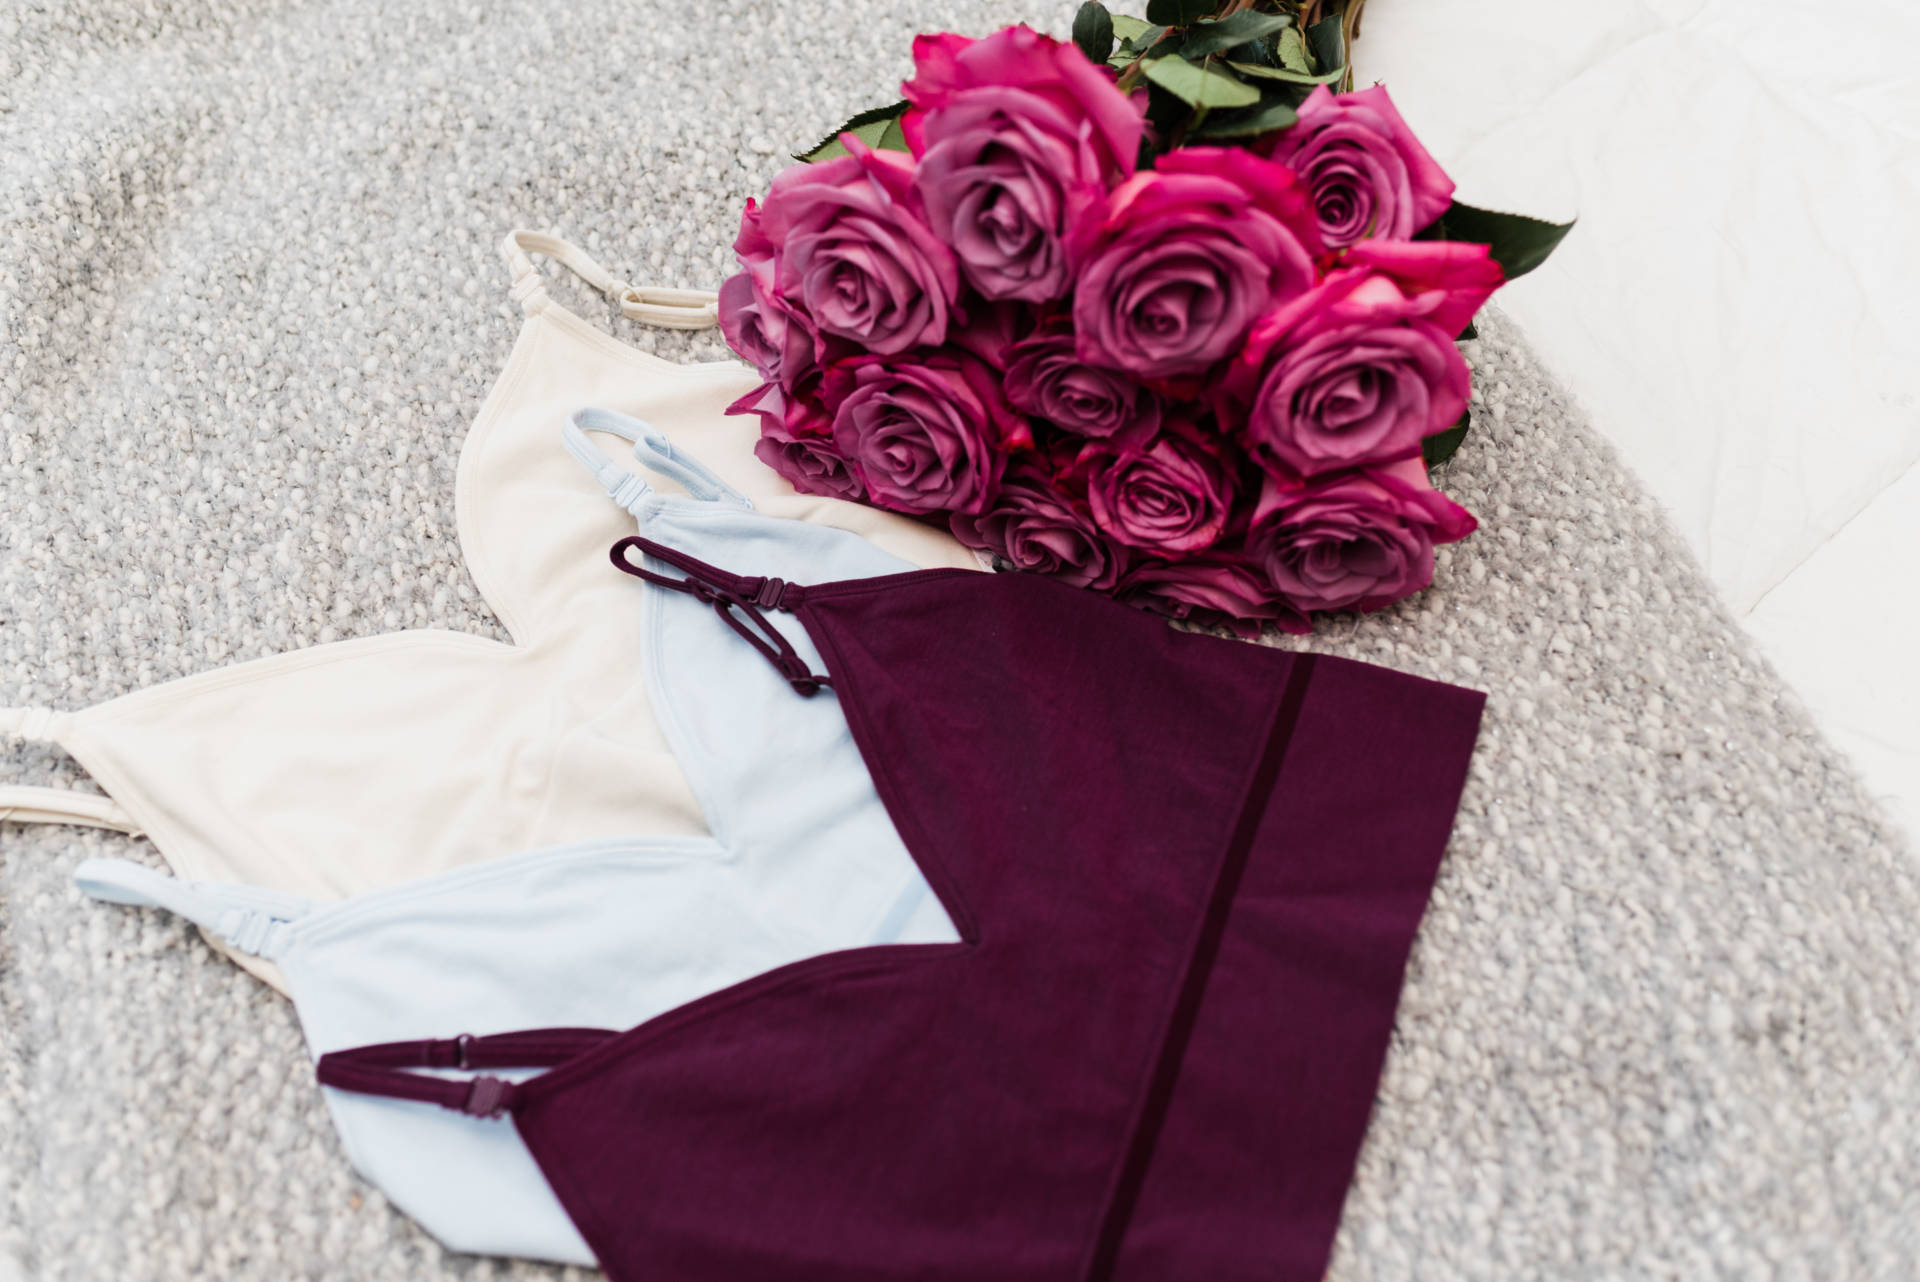 Ruthie Ridley Blog Upgrade your intimates with Kohl's! They have the best semi-annual sale running this march for everyones needs! Don't miss out on this opportunity to refresh your underwear drawer at a great price!